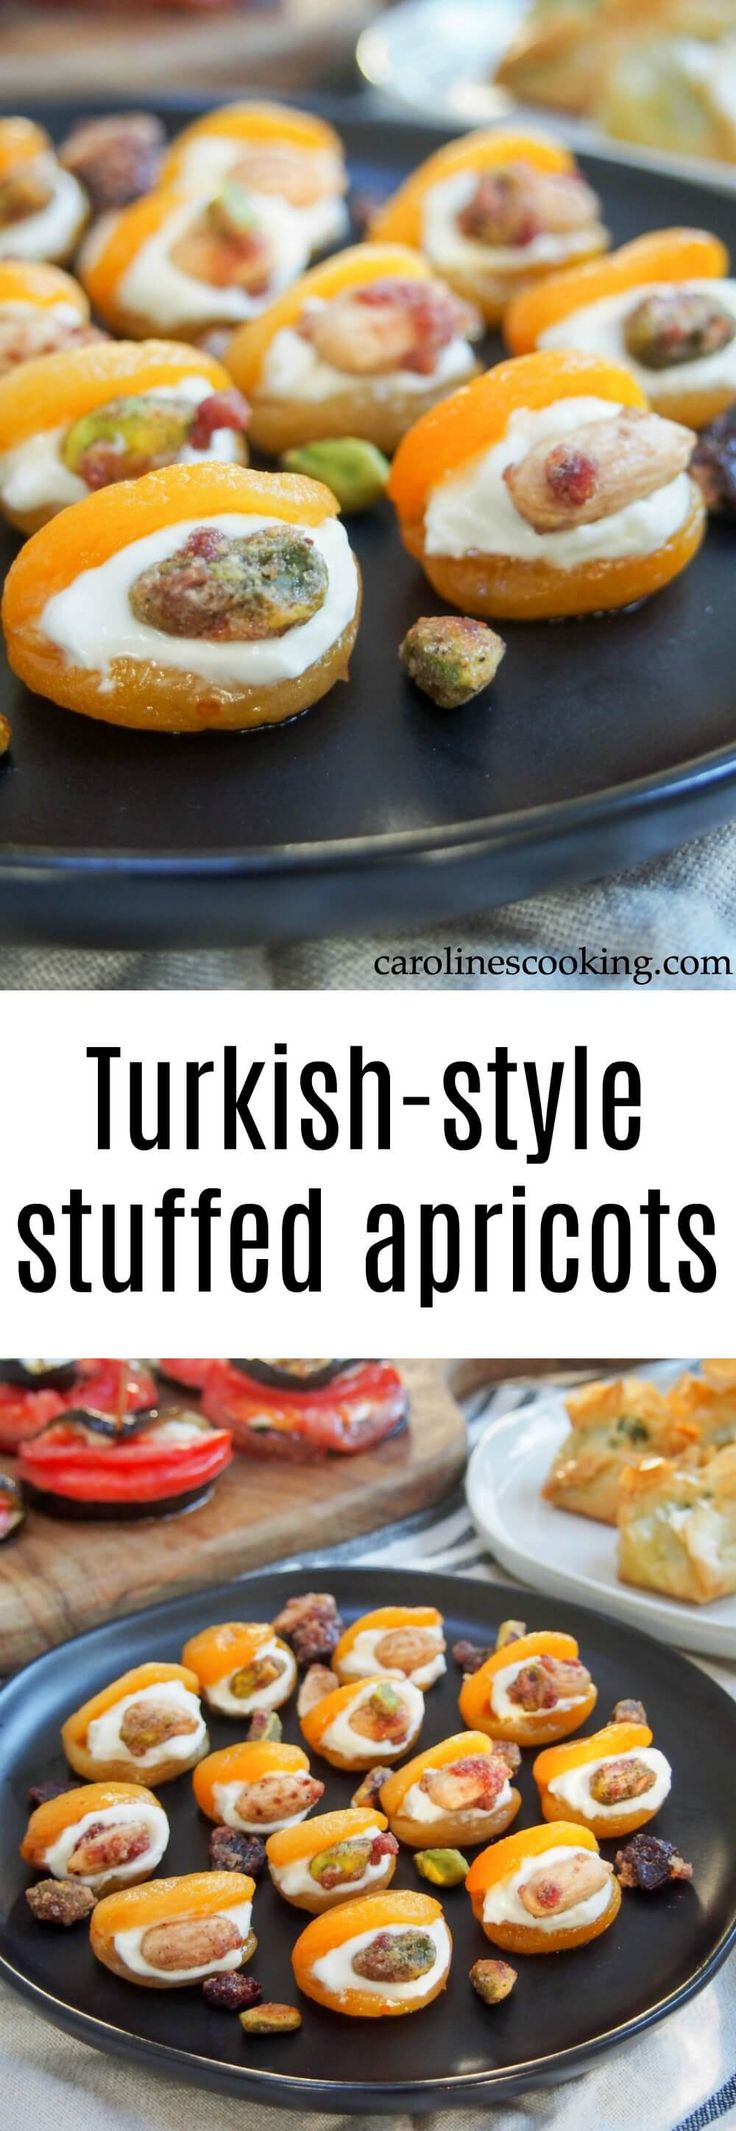 These Turkish-style stuffed apricots are incredibly easy to make and perfect for entertaining, whether as a sweet appetizer or simple bite-sized dessert.